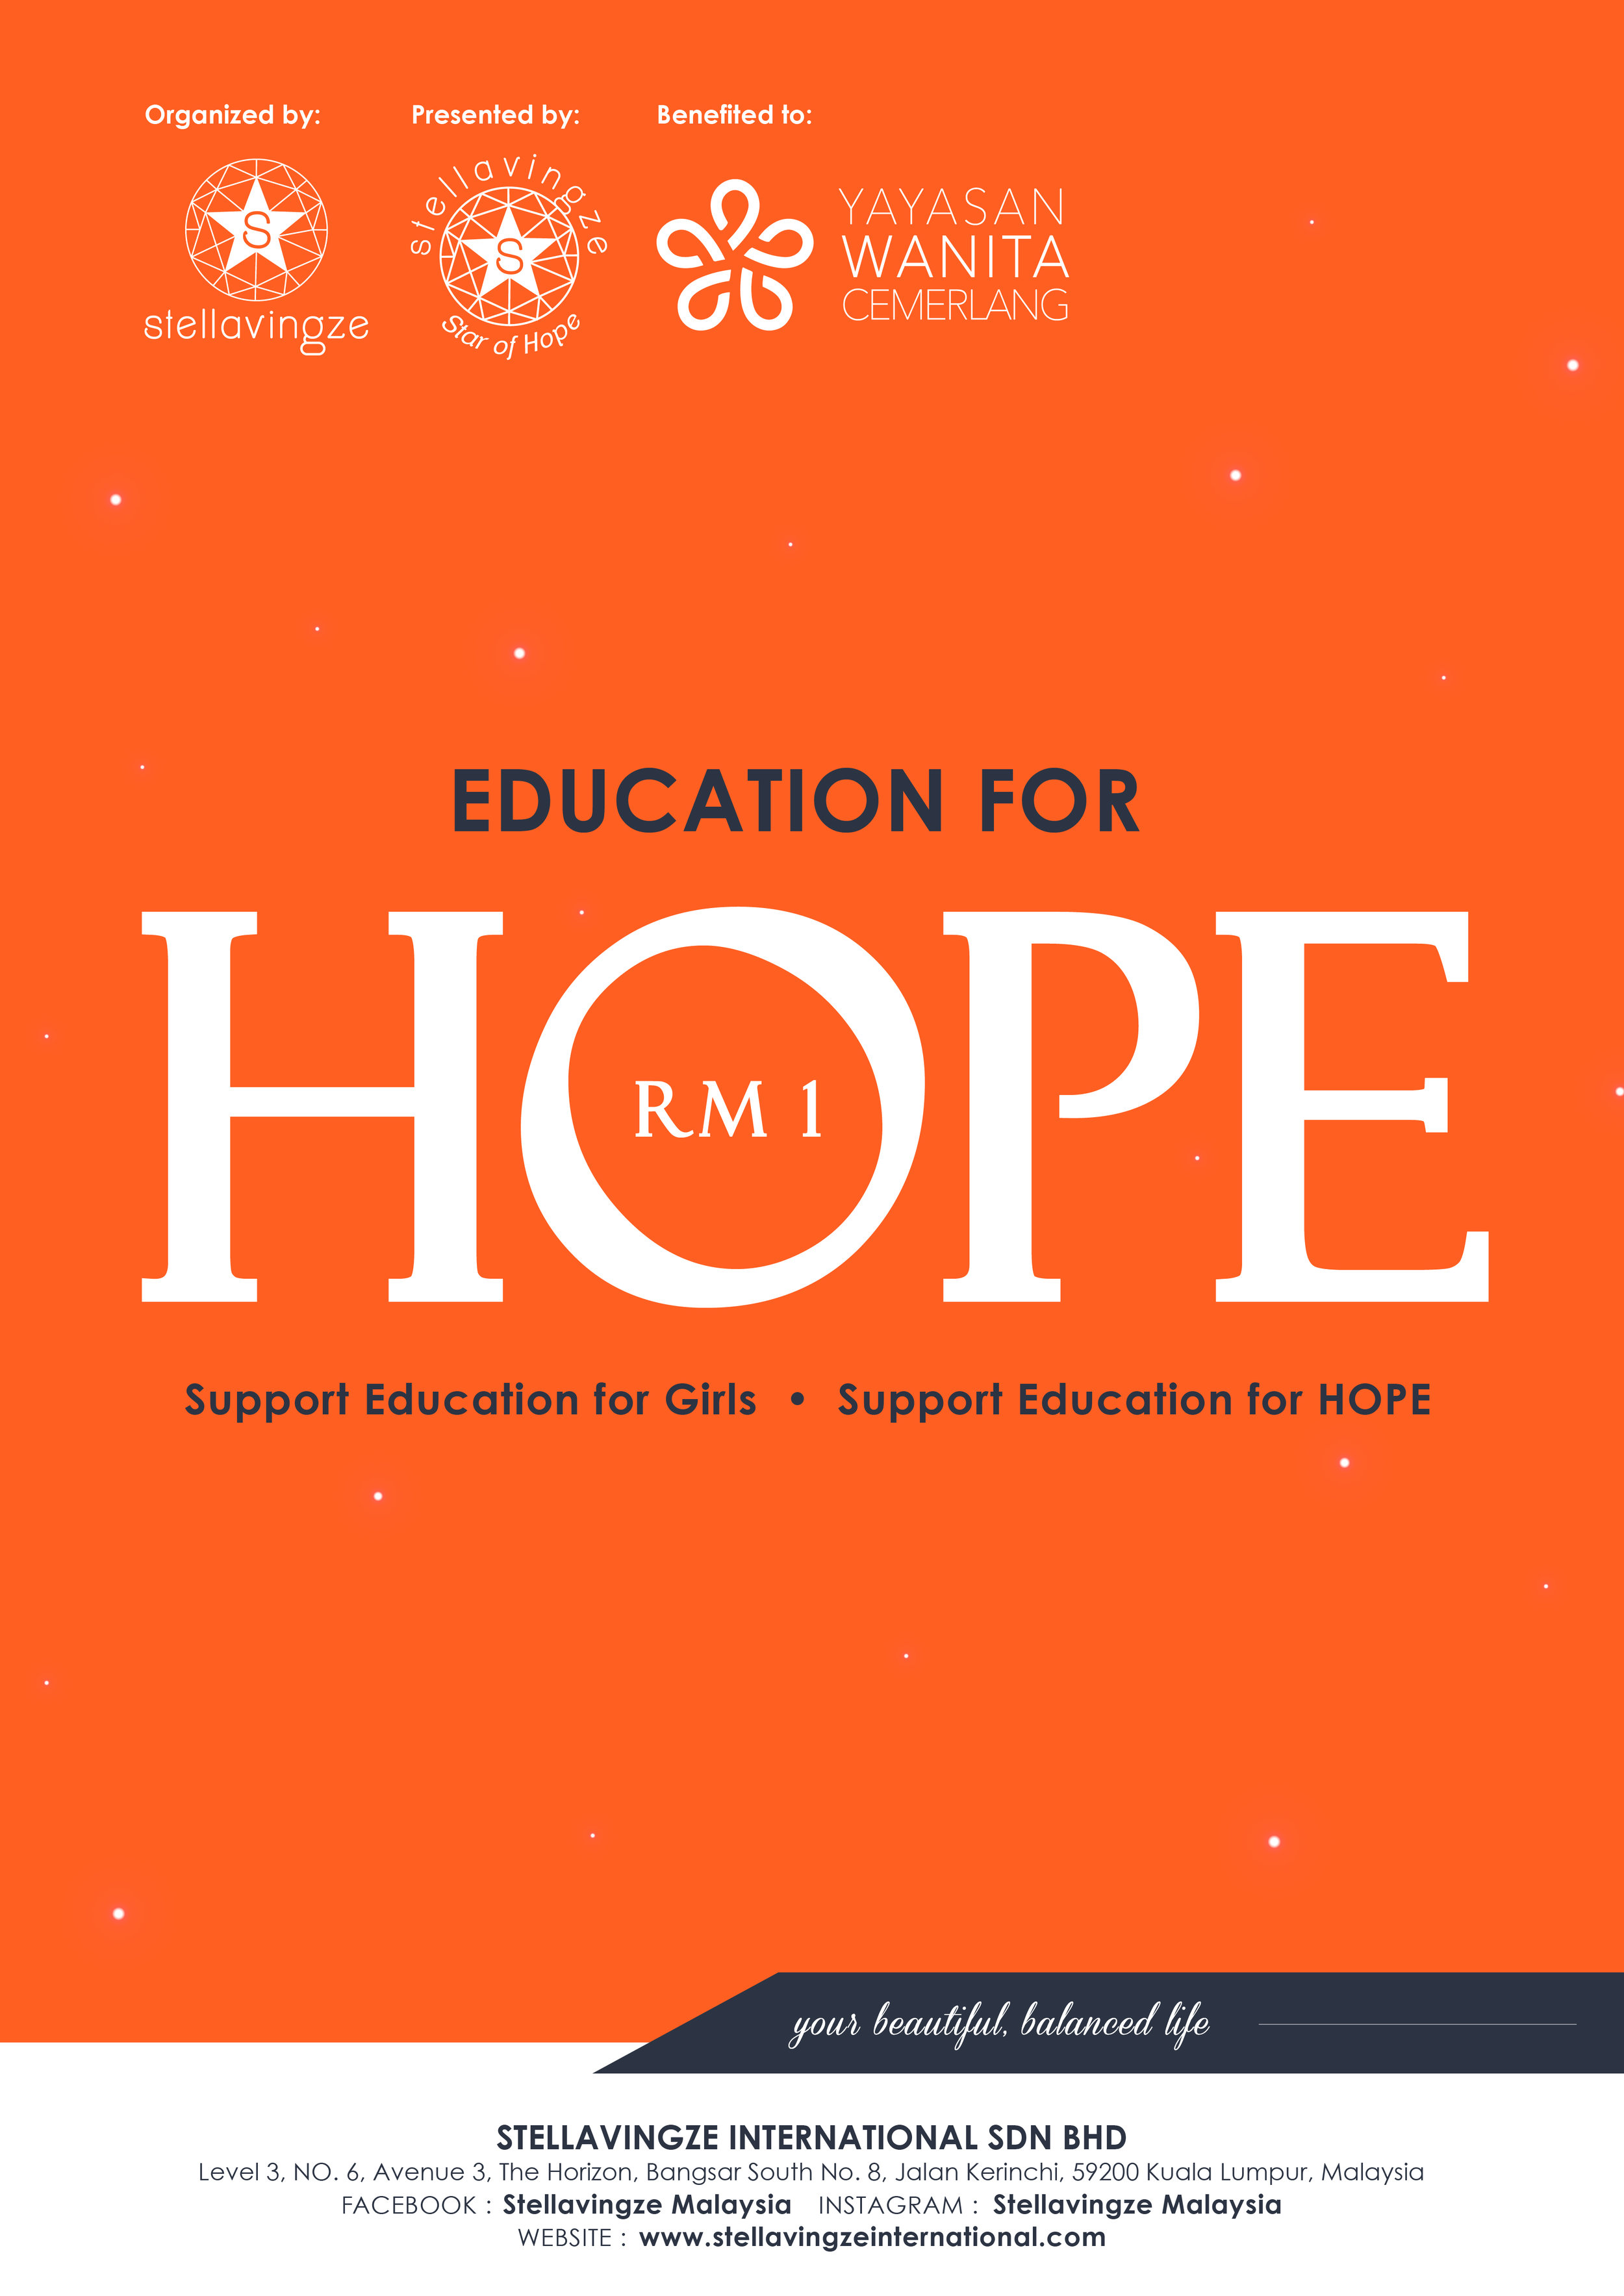 STZ 20180402 Stellavingze EDUCATION FOR HOPE Poster-01.jpg